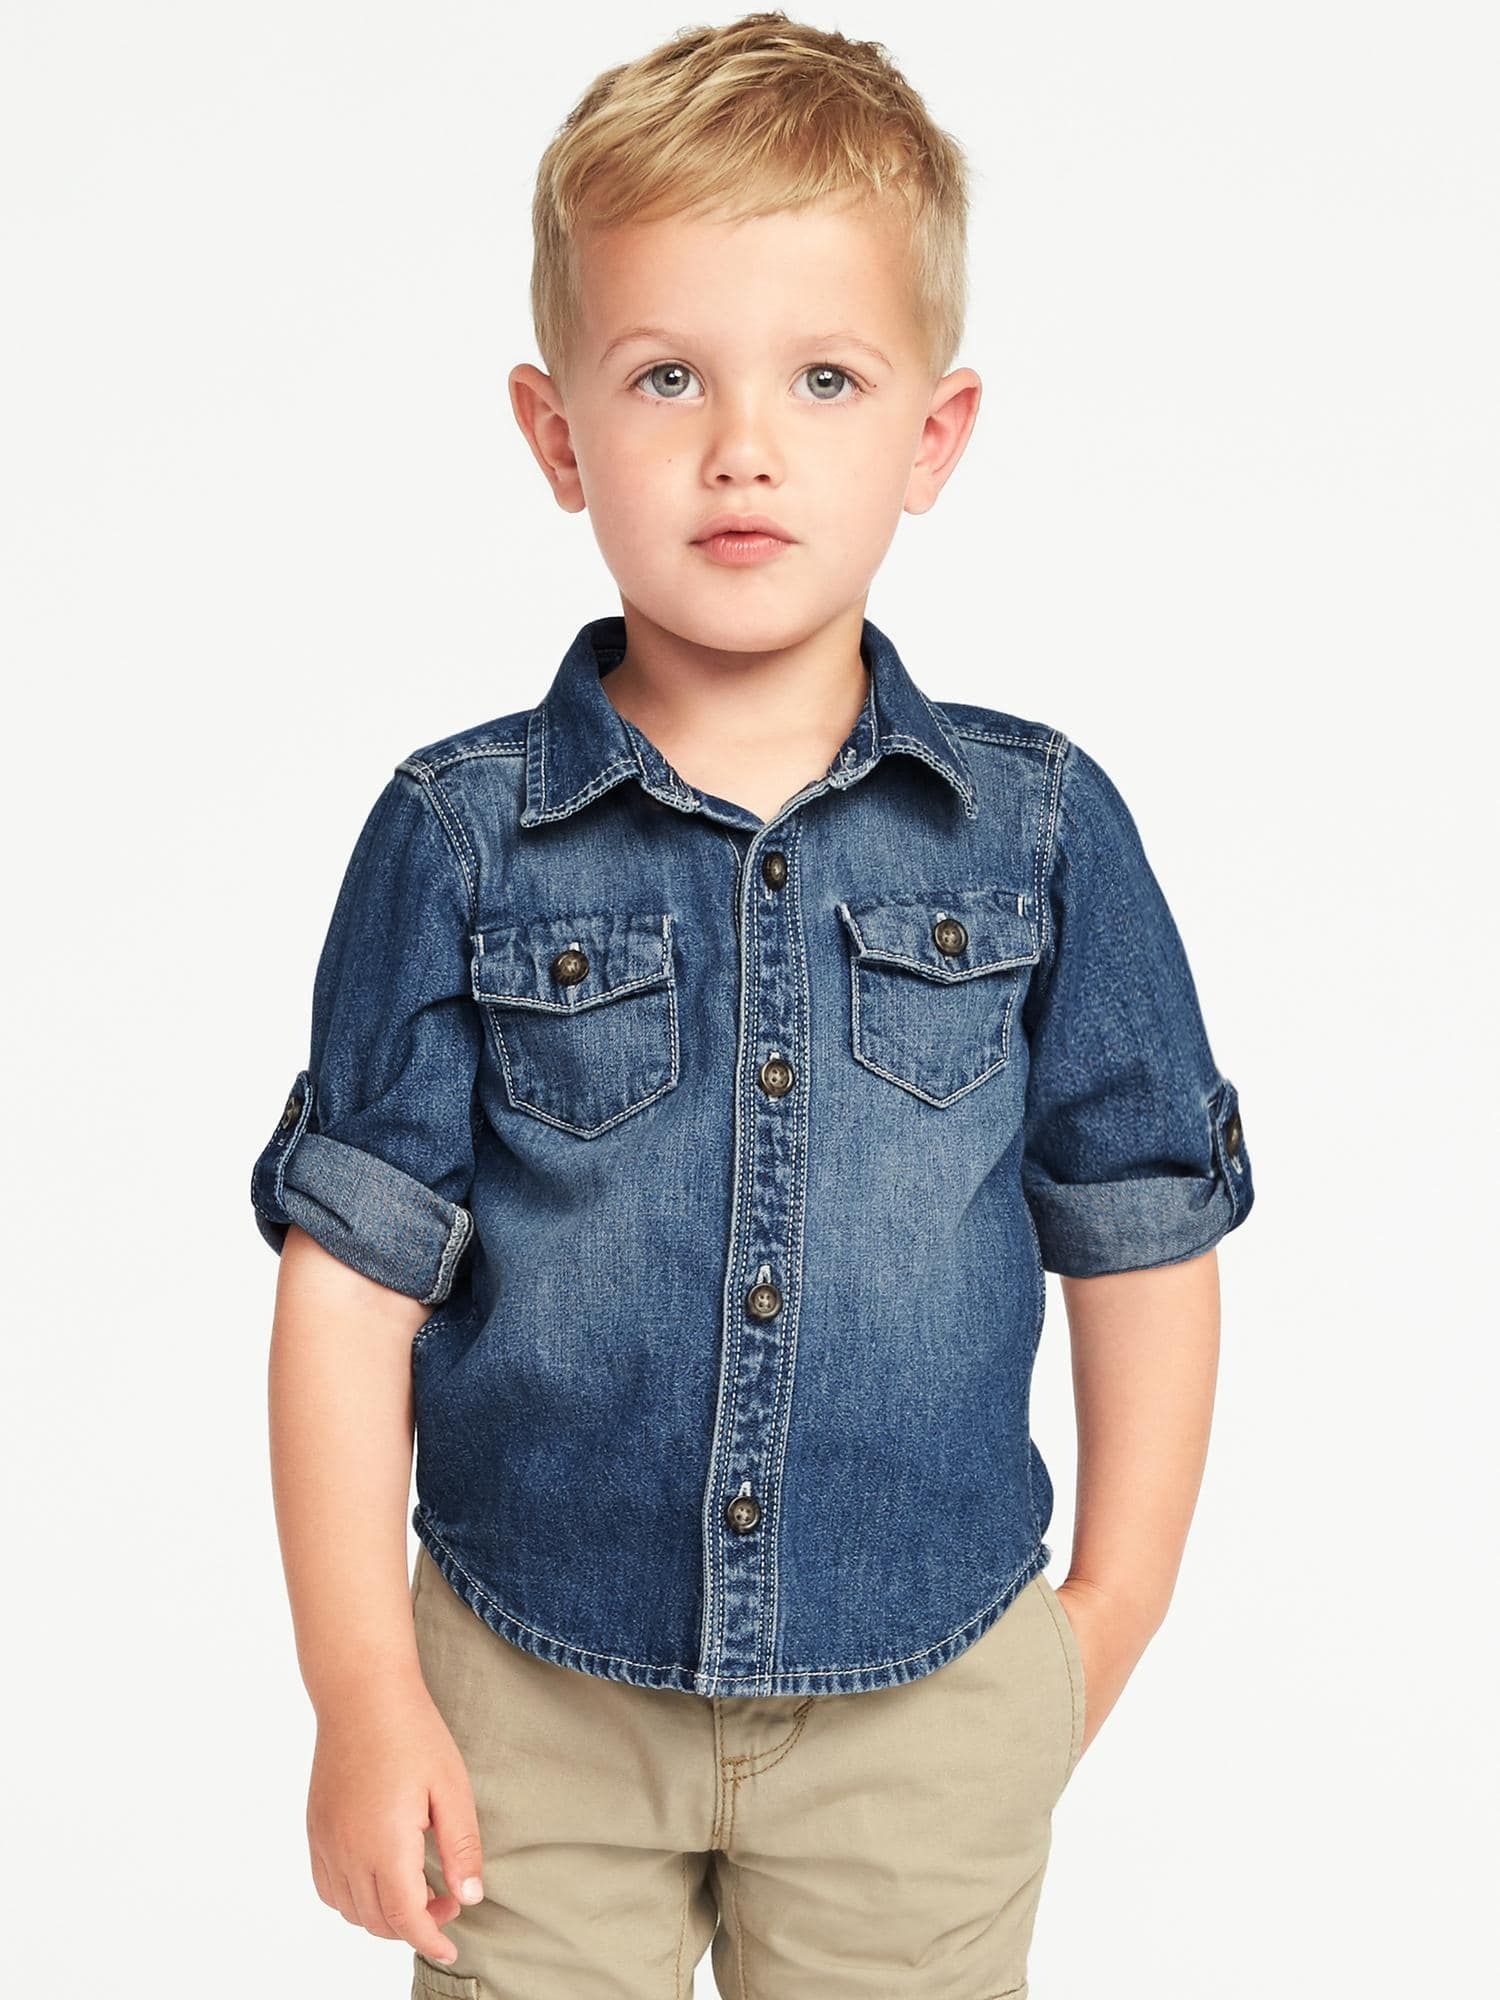 Toddler Boys Clothes & Outfits | C21